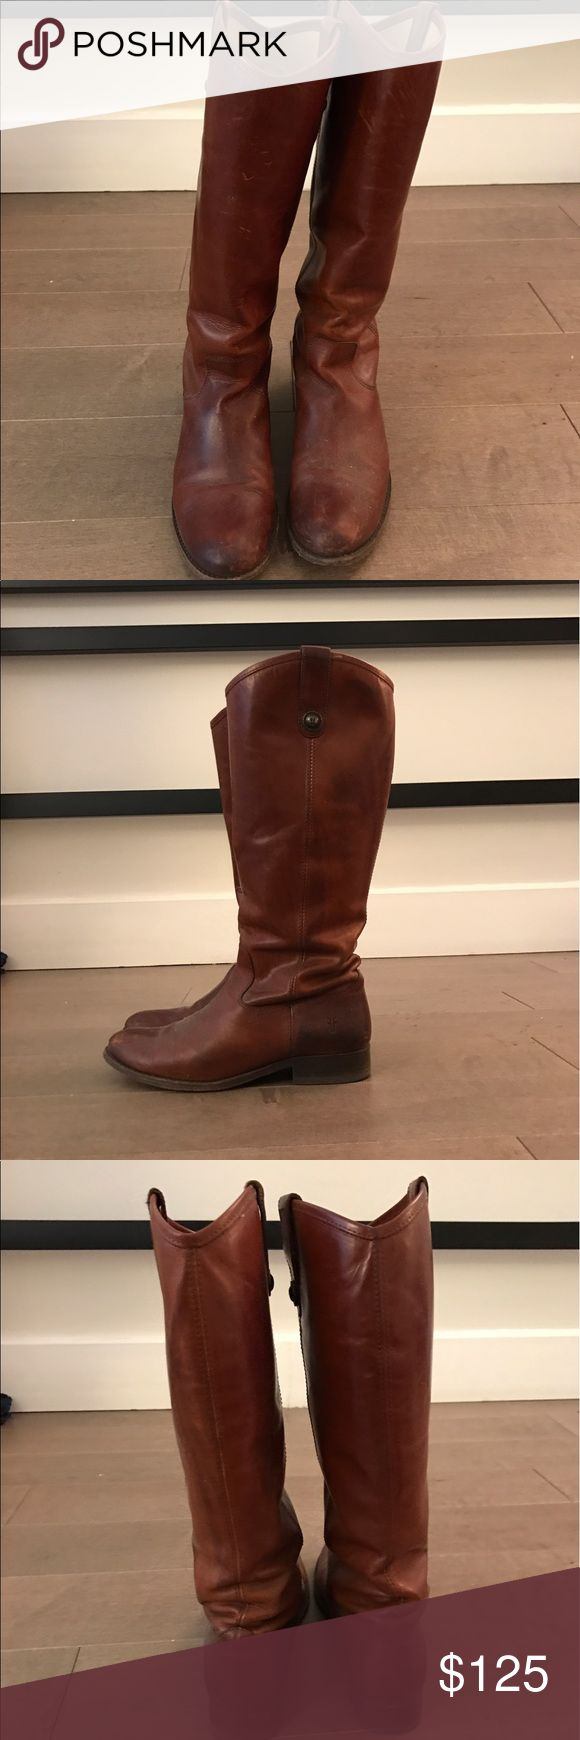 Frye Melissa Boot, Cognac, 7.5 Frye Melissa boot in 7.5. Beautiful cognac leather with natural color variation and lightly worn soles. Interior is broken in already for comfort. Frye Shoes